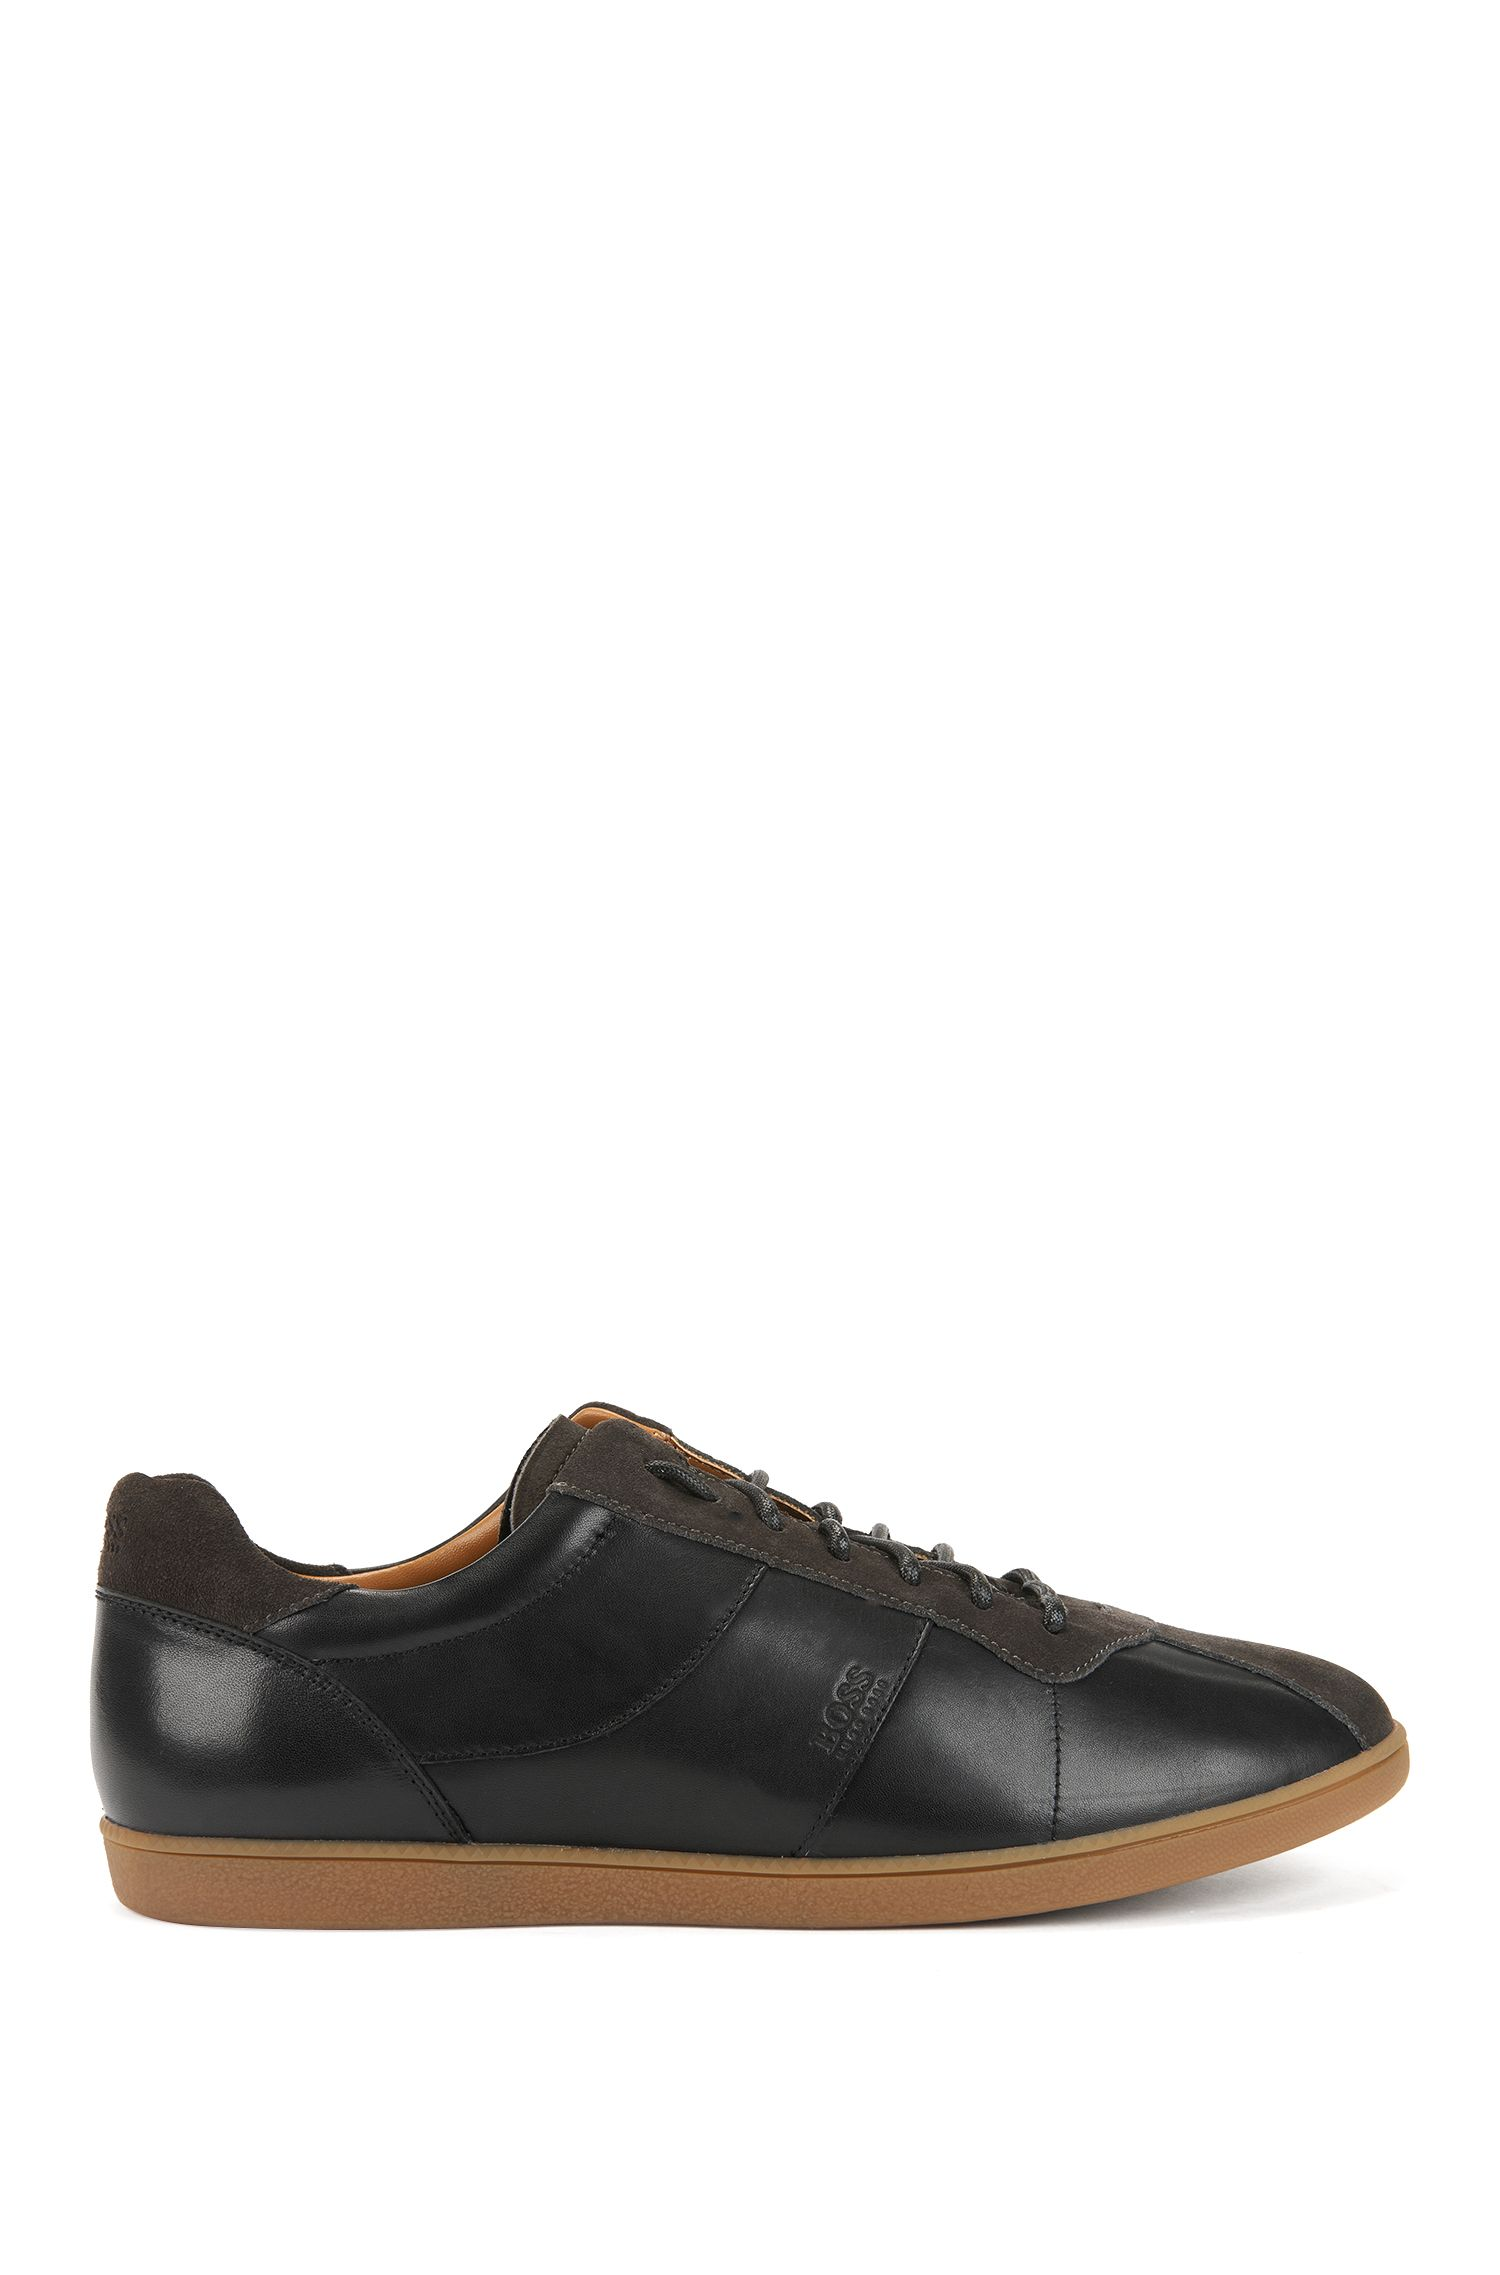 Tennis-style trainers in nappa leather with suede uppers